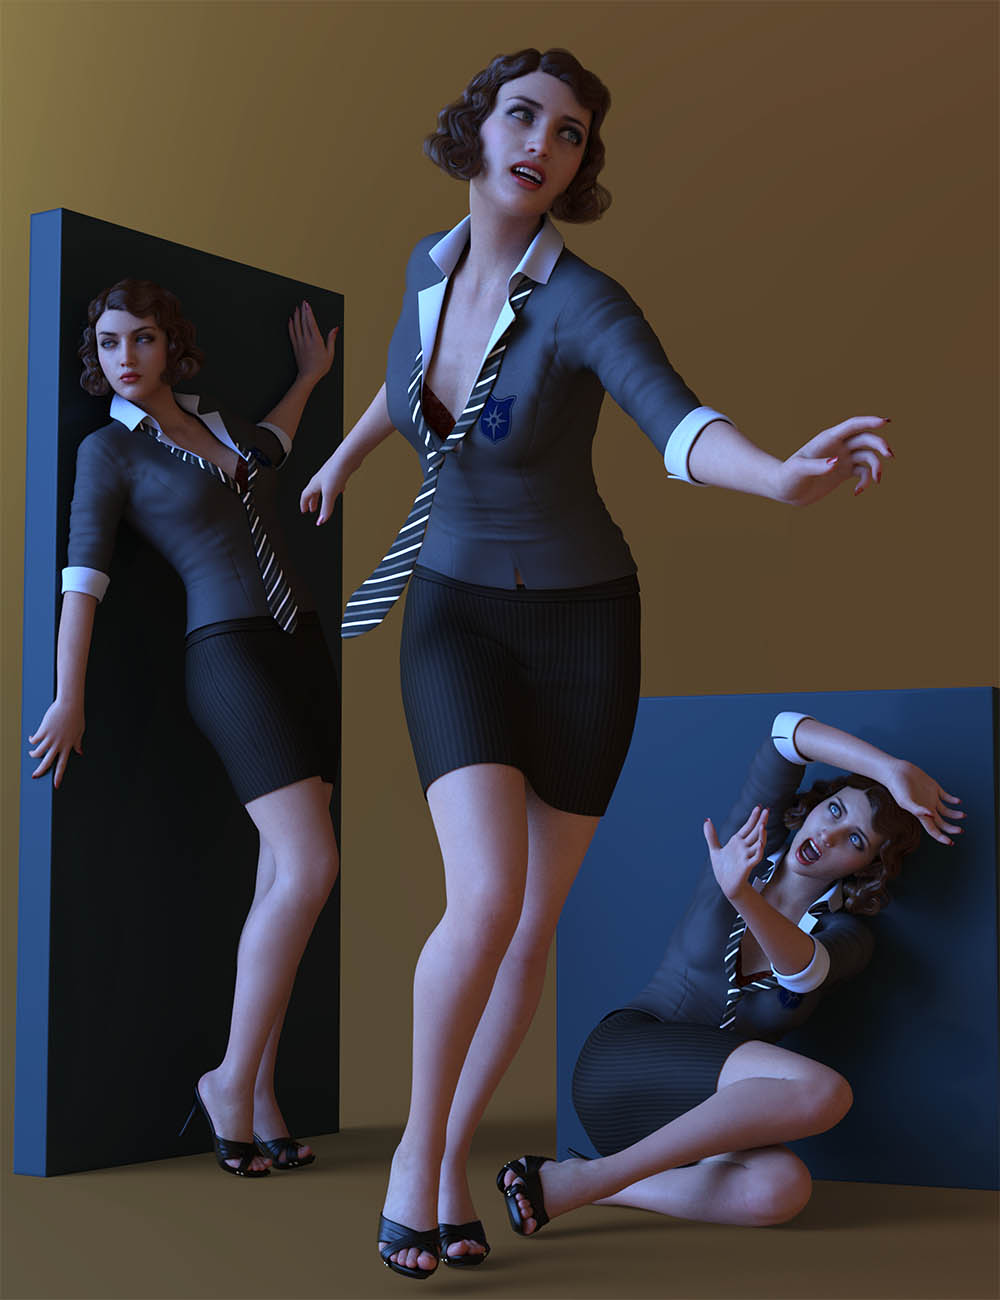 CDI Crime Cover Poses for Genesis 8.1 Female by: Capsces Digital Ink, 3D Models by Daz 3D